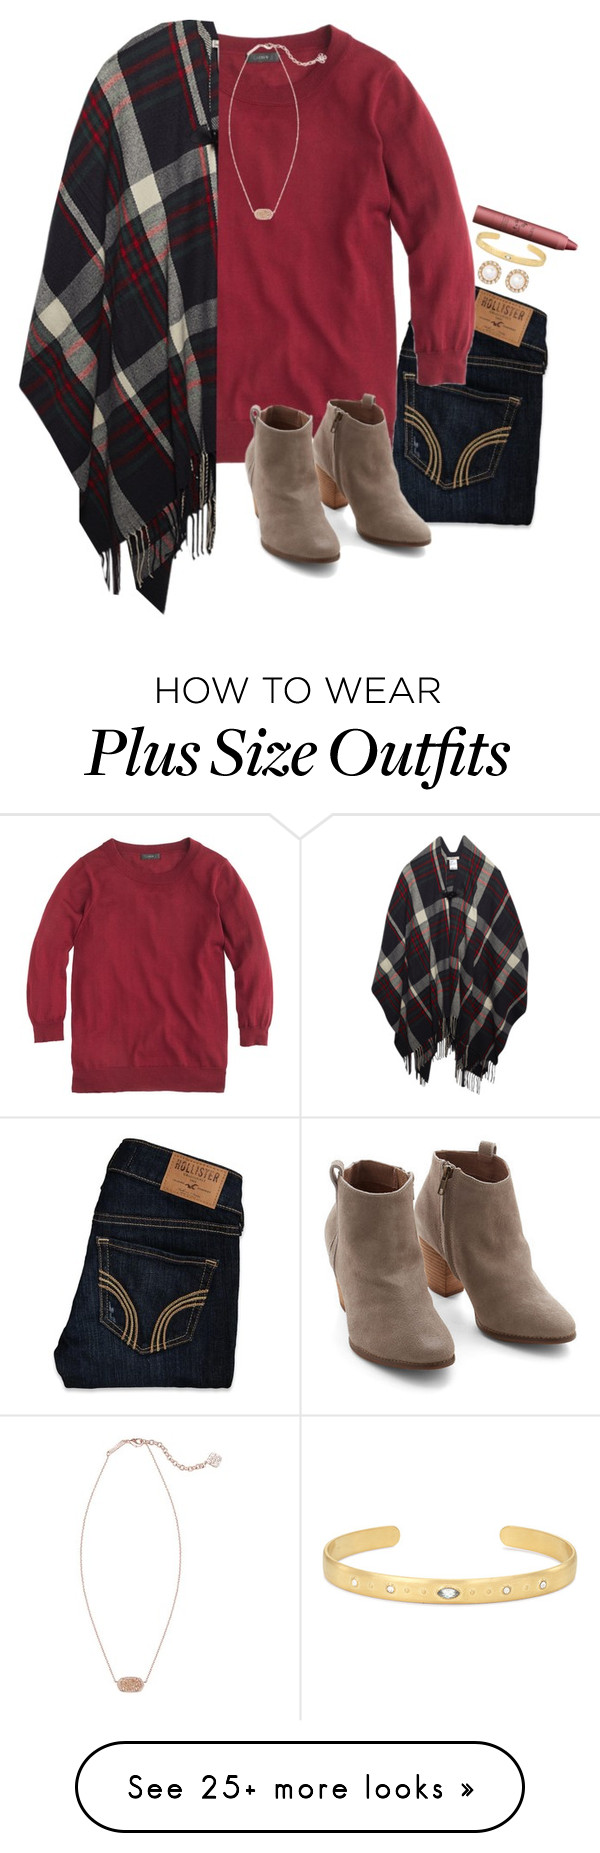 """""""Cheer competition tomorrow!!"""" by anna-watson00 on Polyvore featuring Hollister Co., J.Crew, Wet Seal, Chelsea Crew, Kendra Scott, Forever 21, tarte and Stella & Dot"""